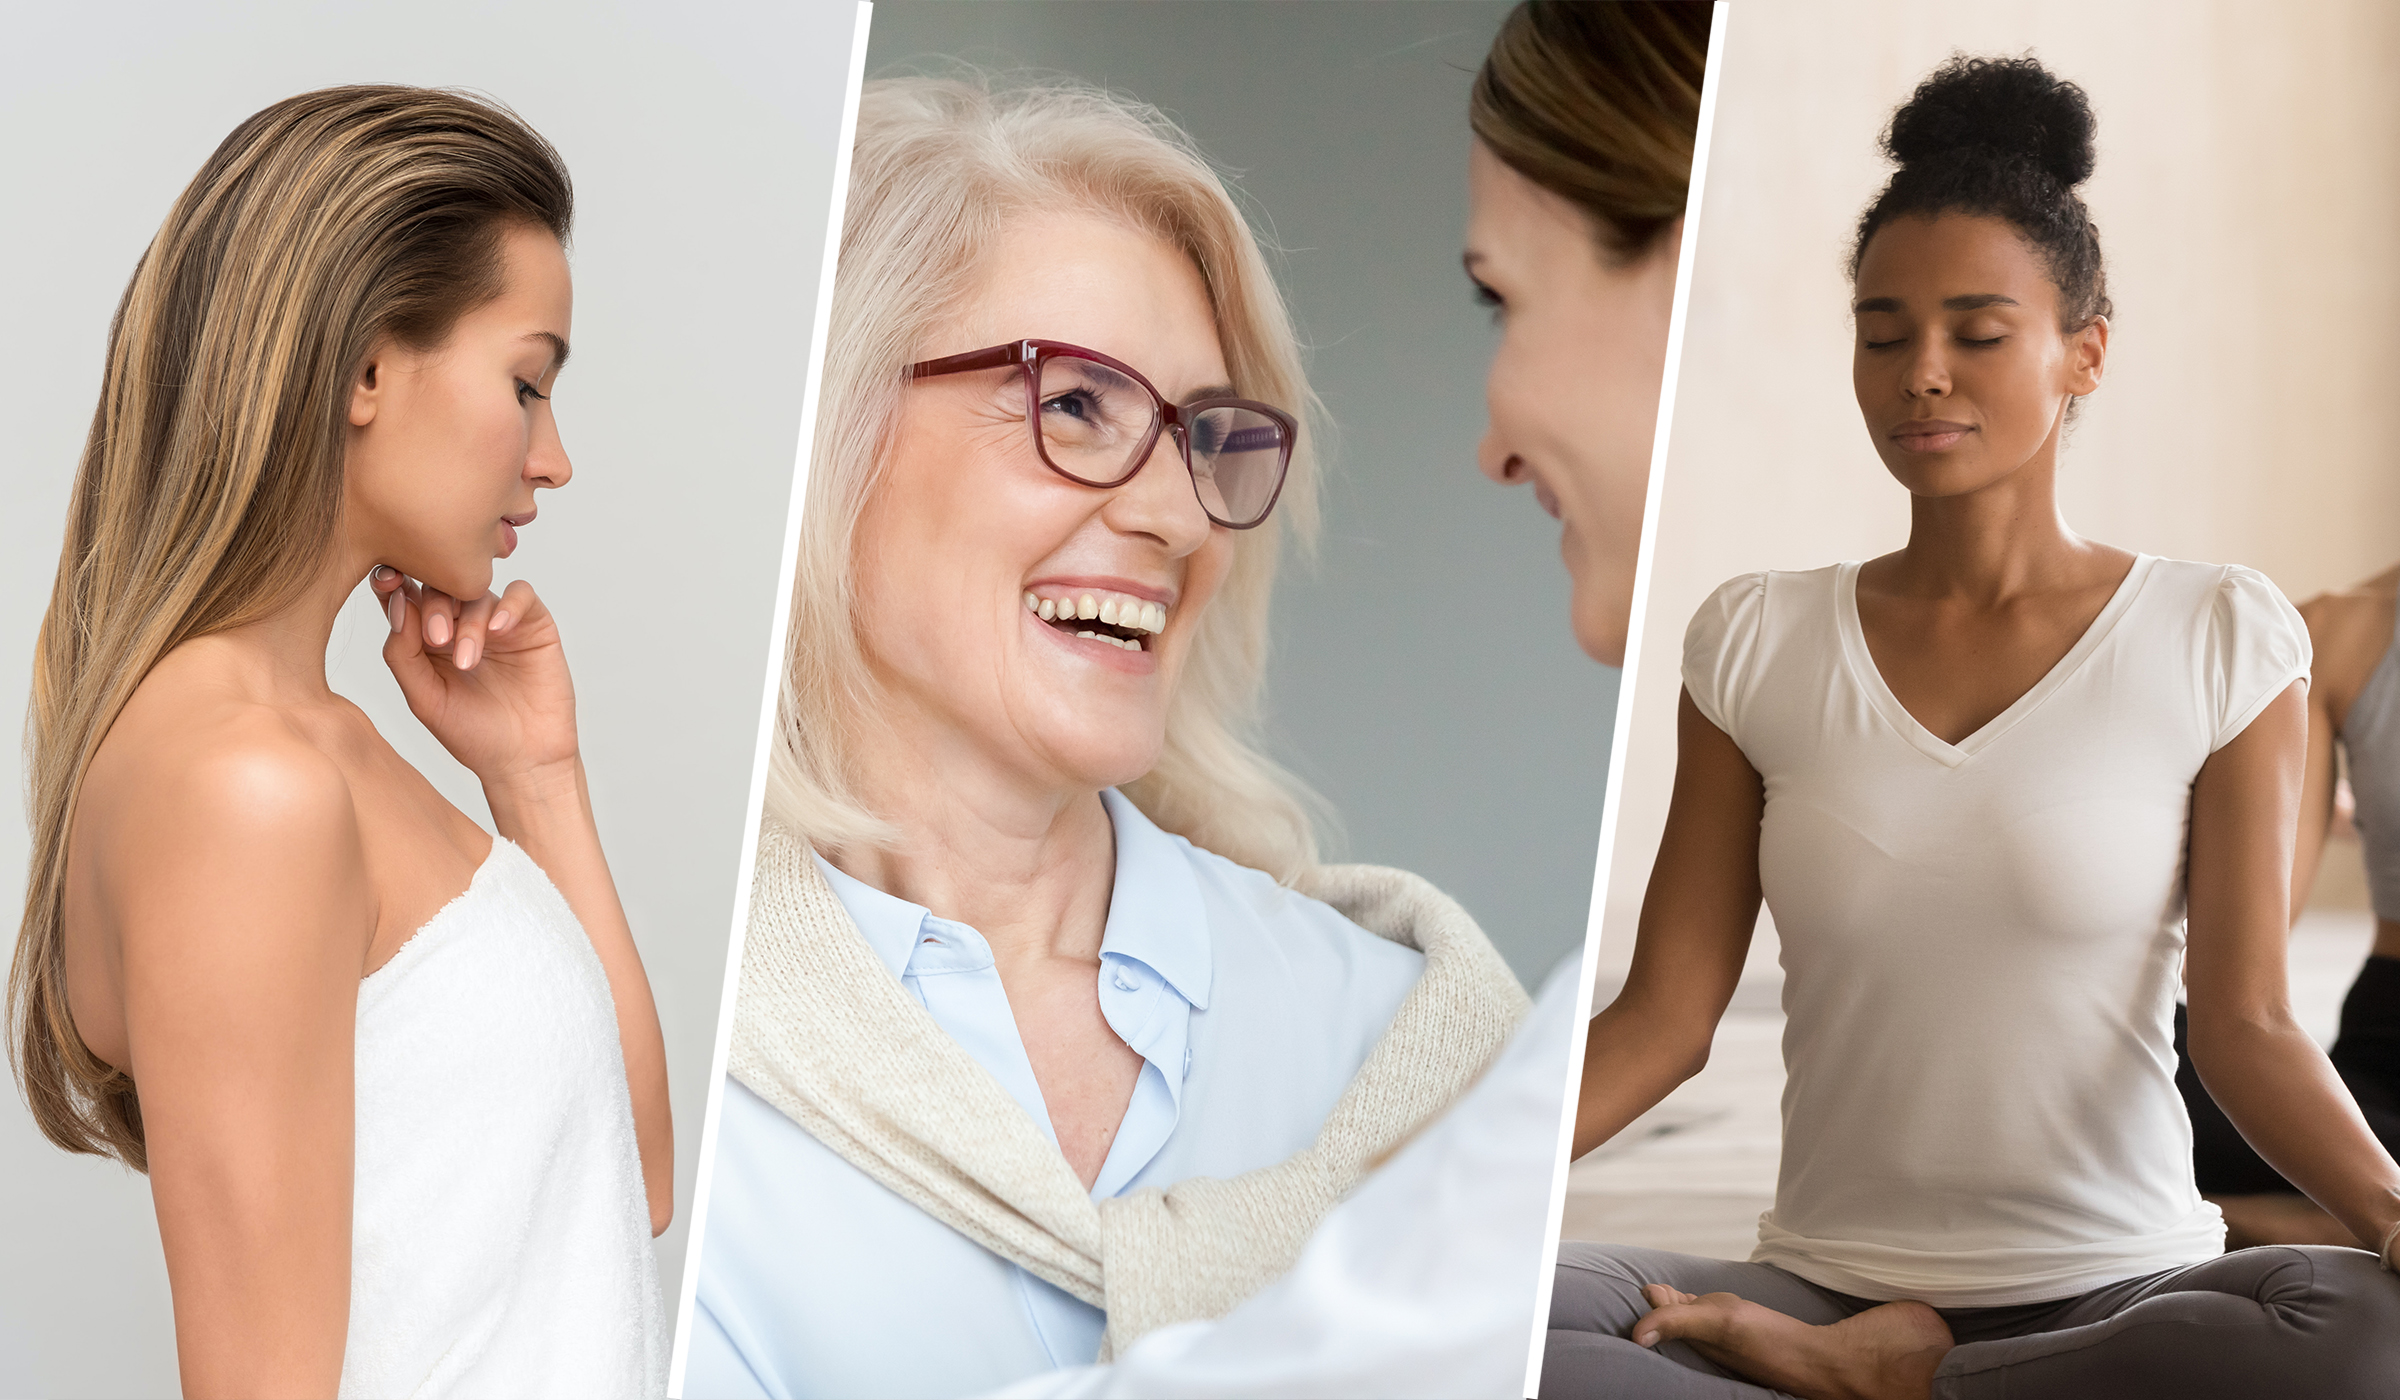 Vitasmart - 20 years research - designed by P&W. D-mannose. Certified in the UK. Serene looking women who have happy and healthy lifestyle.